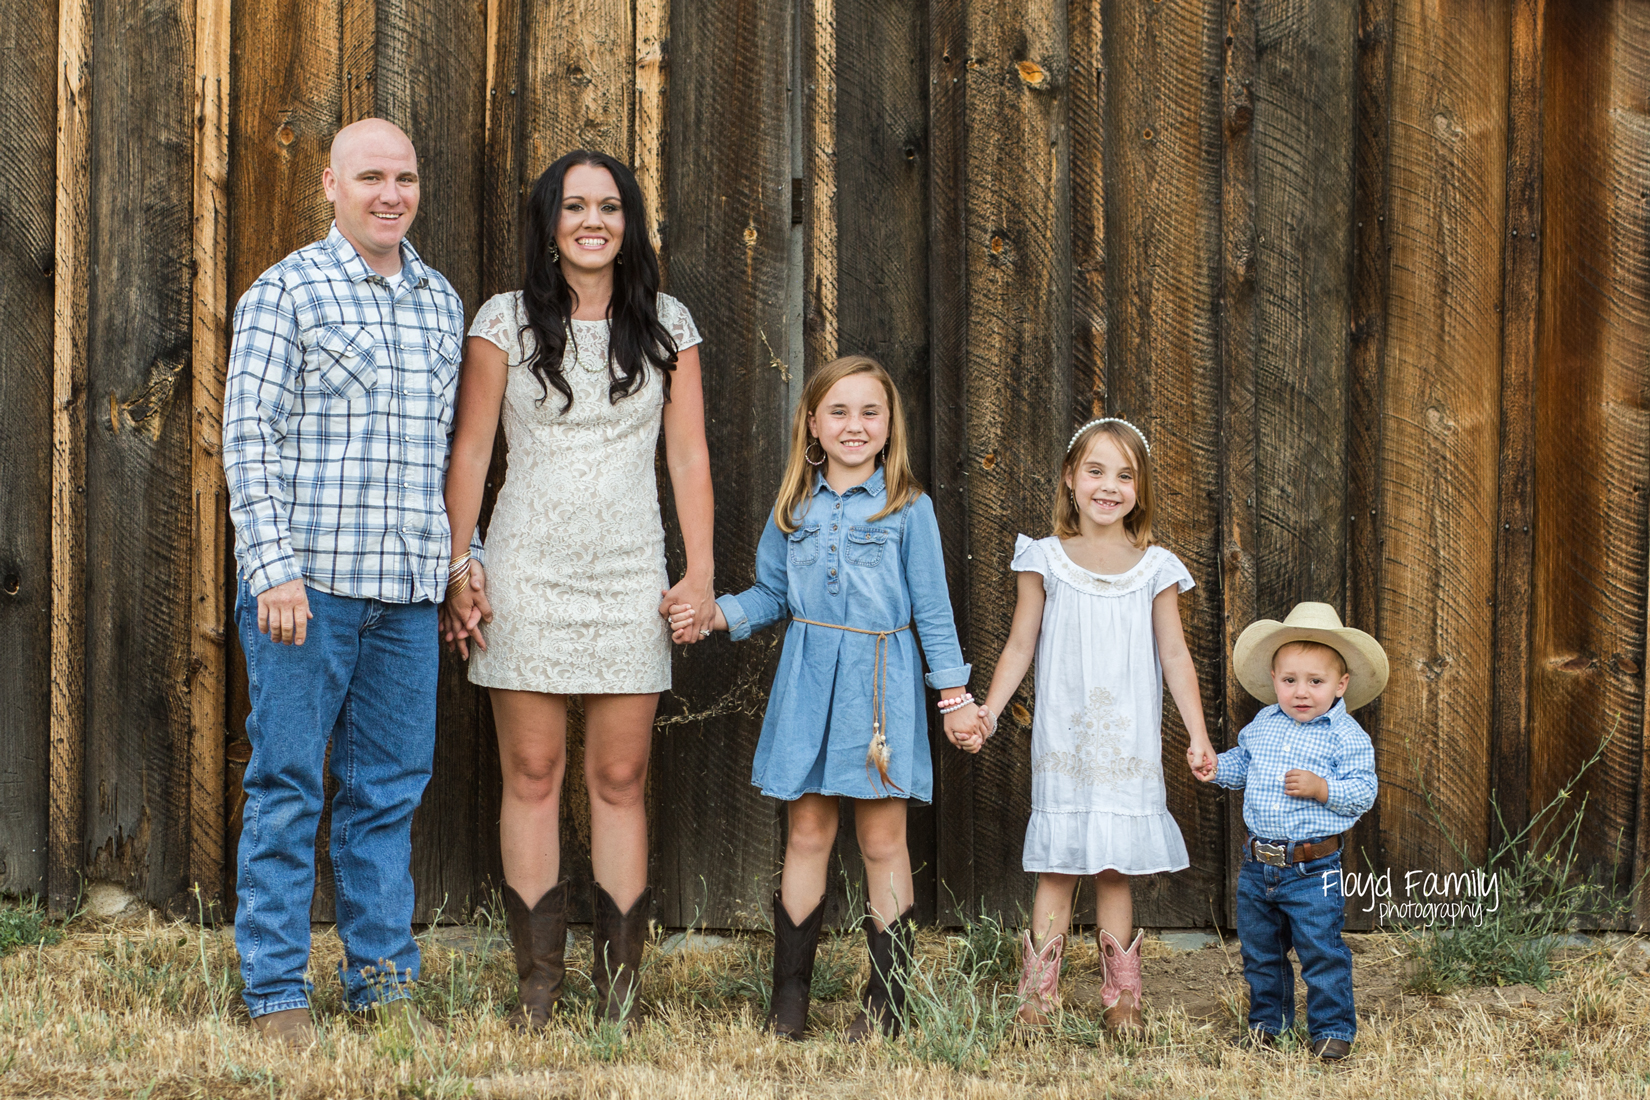 Family log 5 in front of wood barn | Placerville Documentary Family Photography